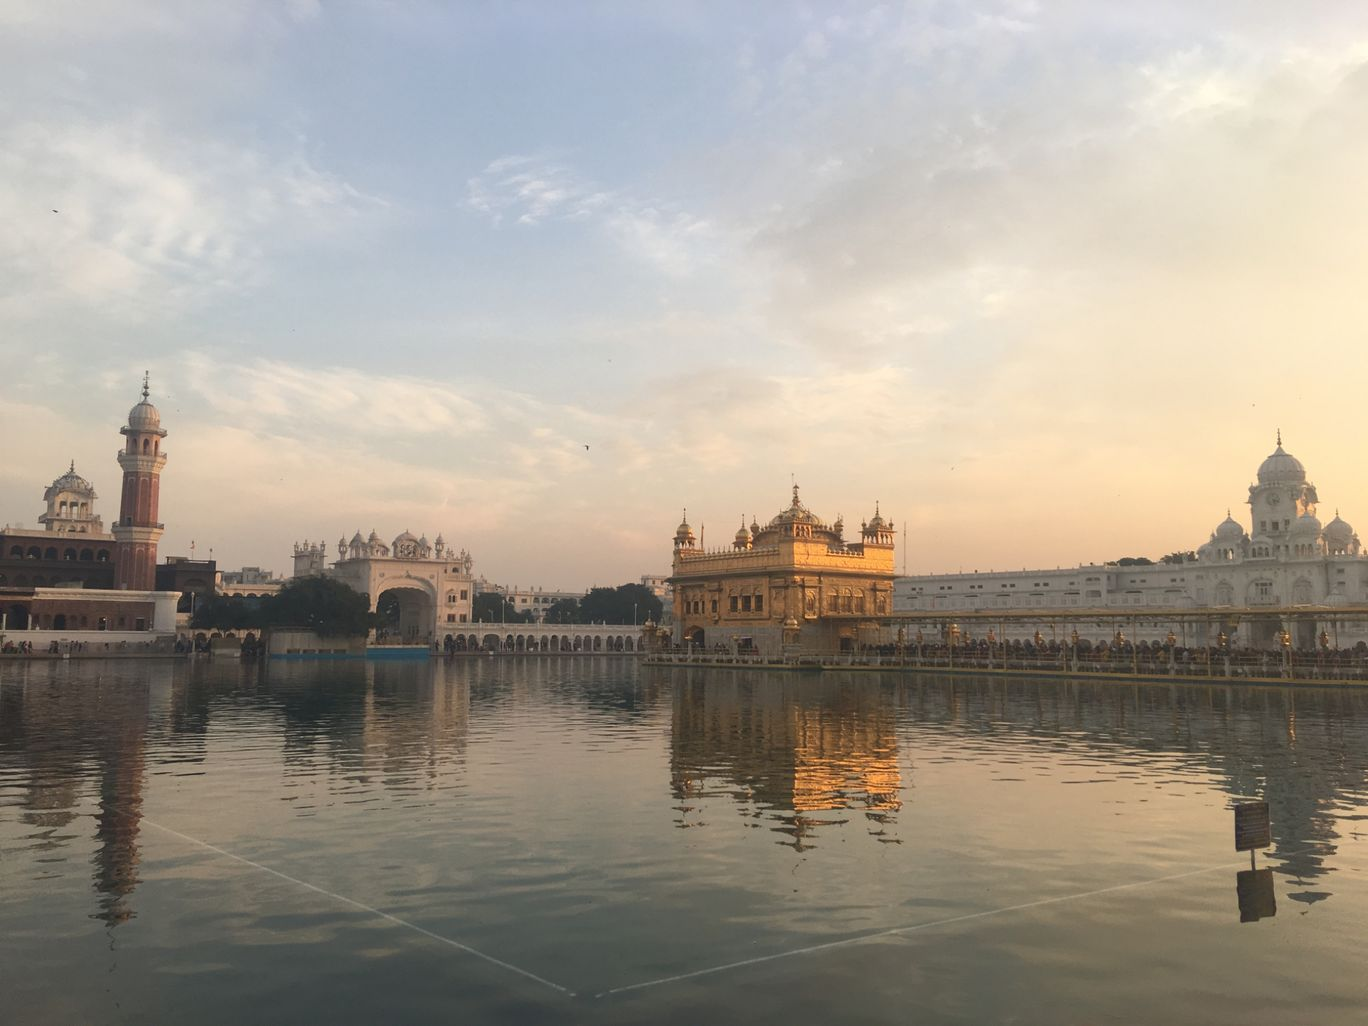 Photo of Golden Temple By rahul rohira